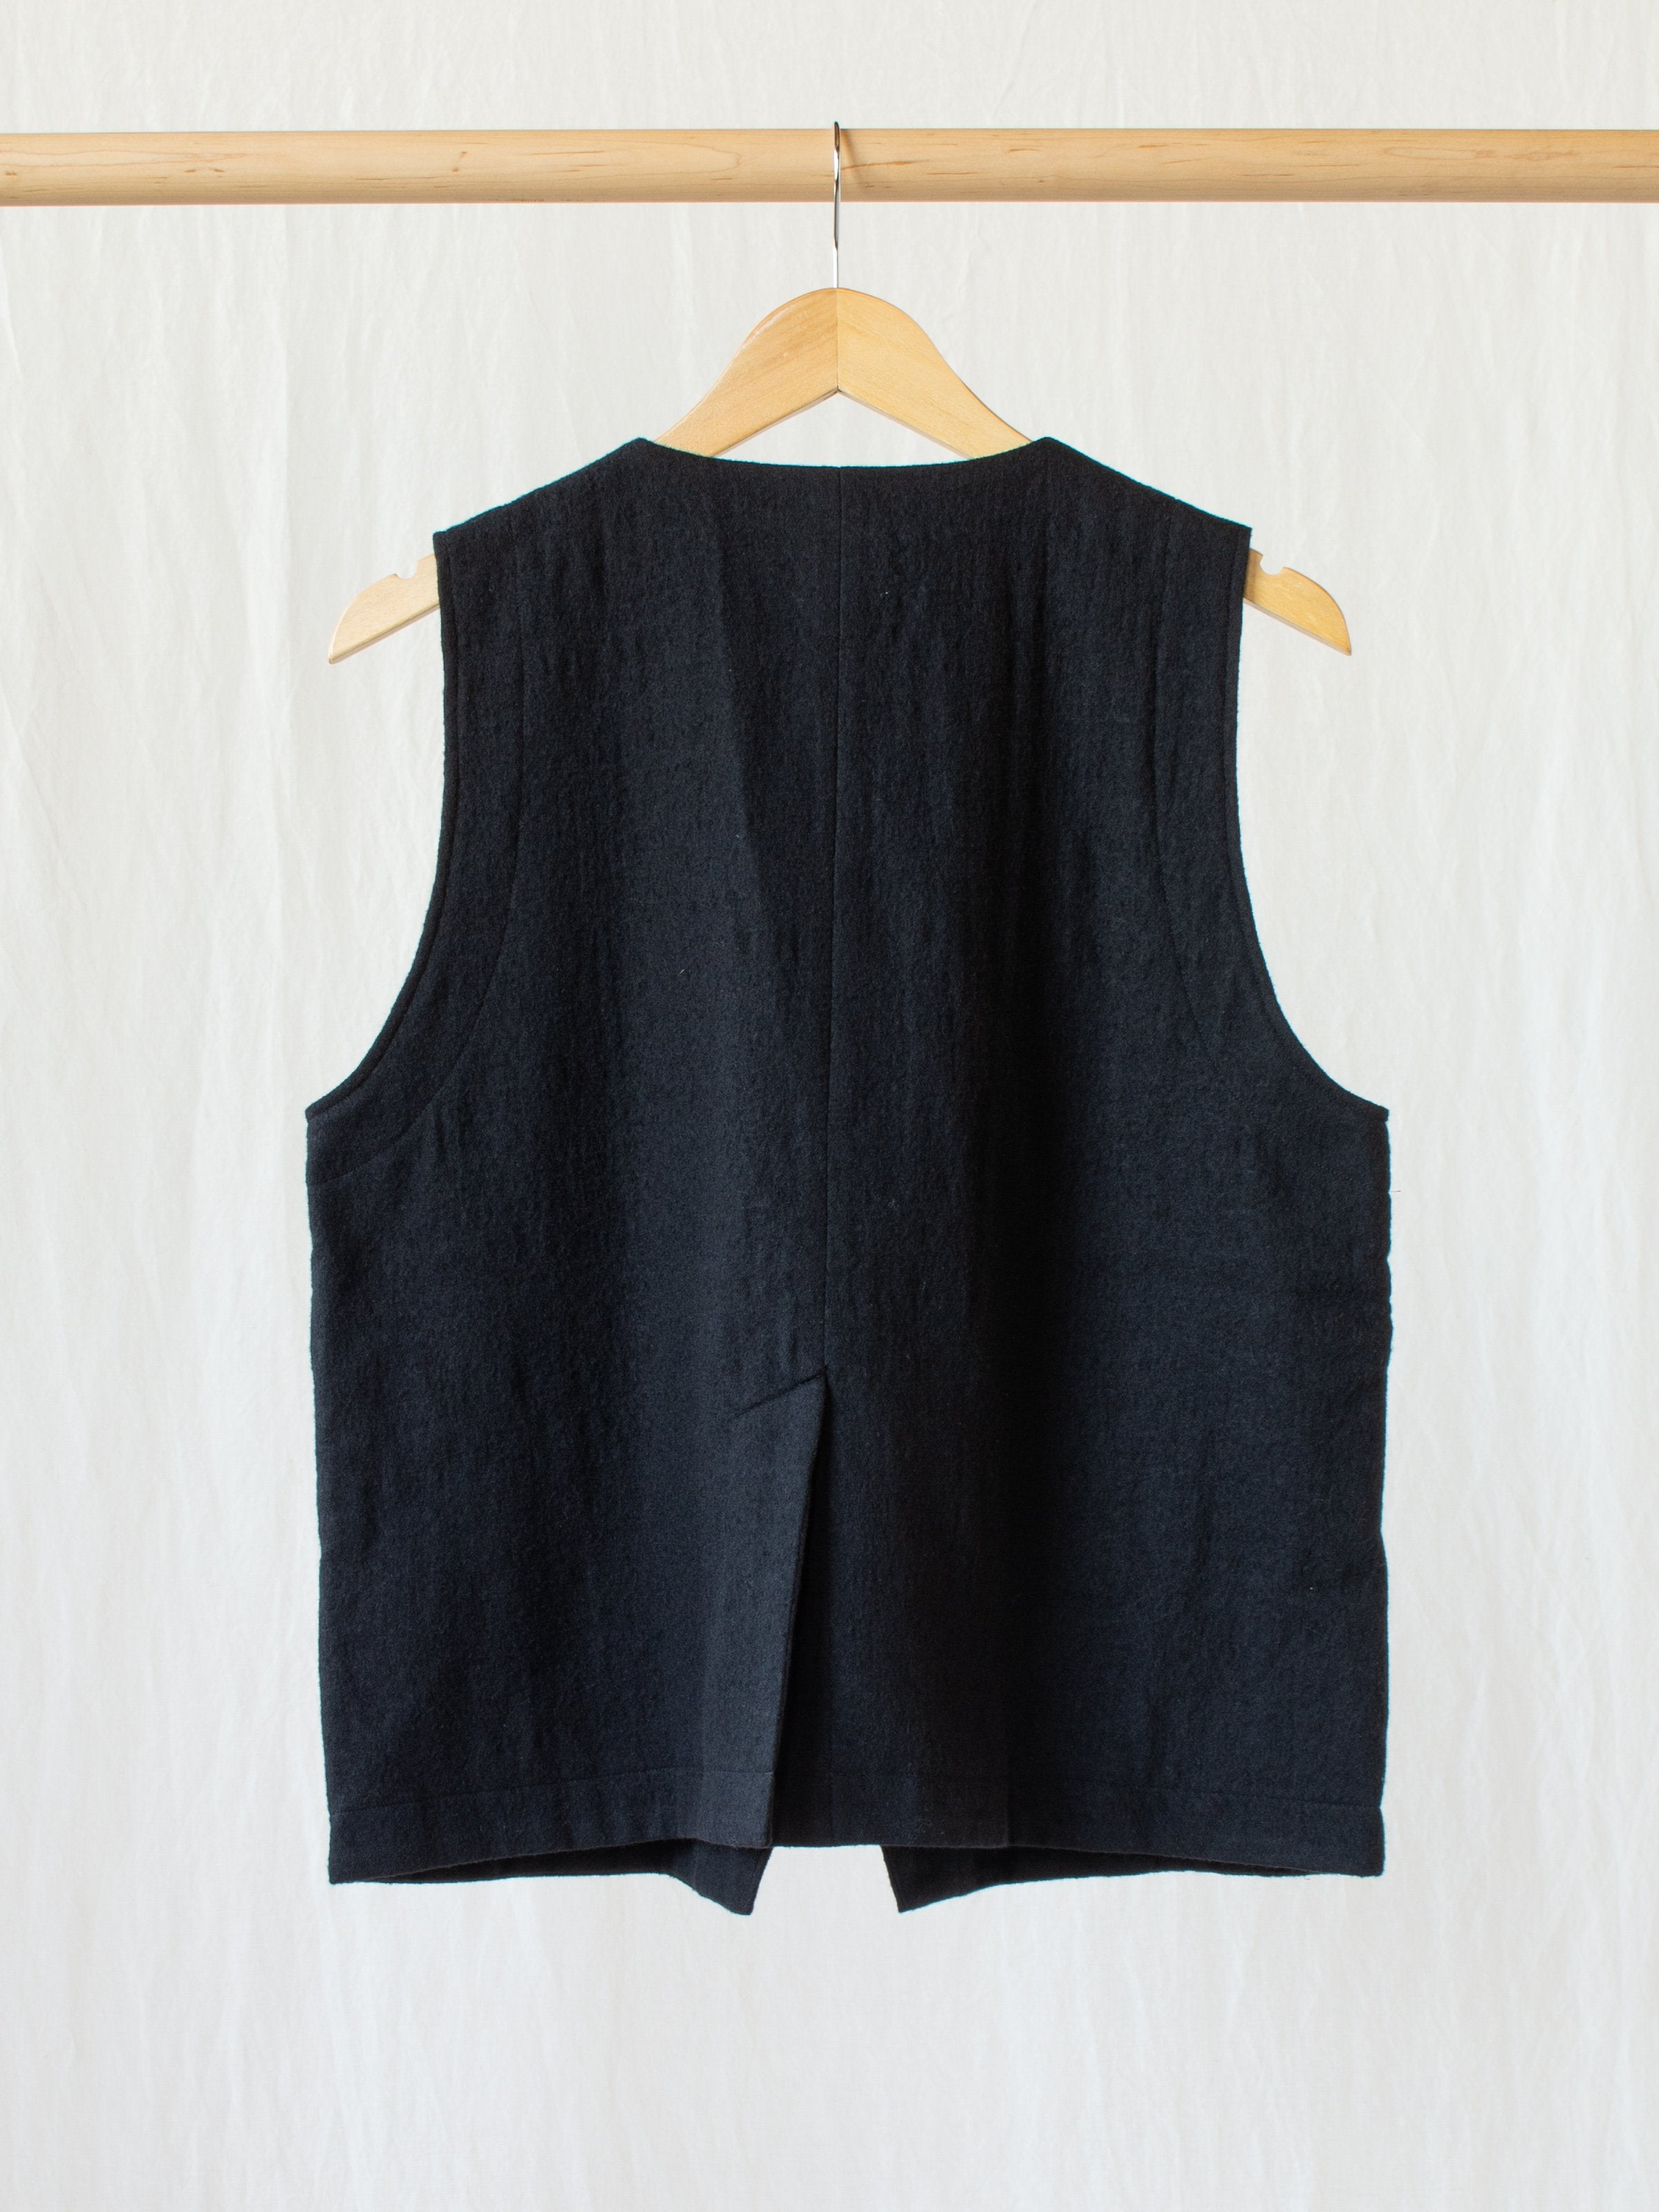 Namu Shop - Veritecoeur Cotton Wool Vest